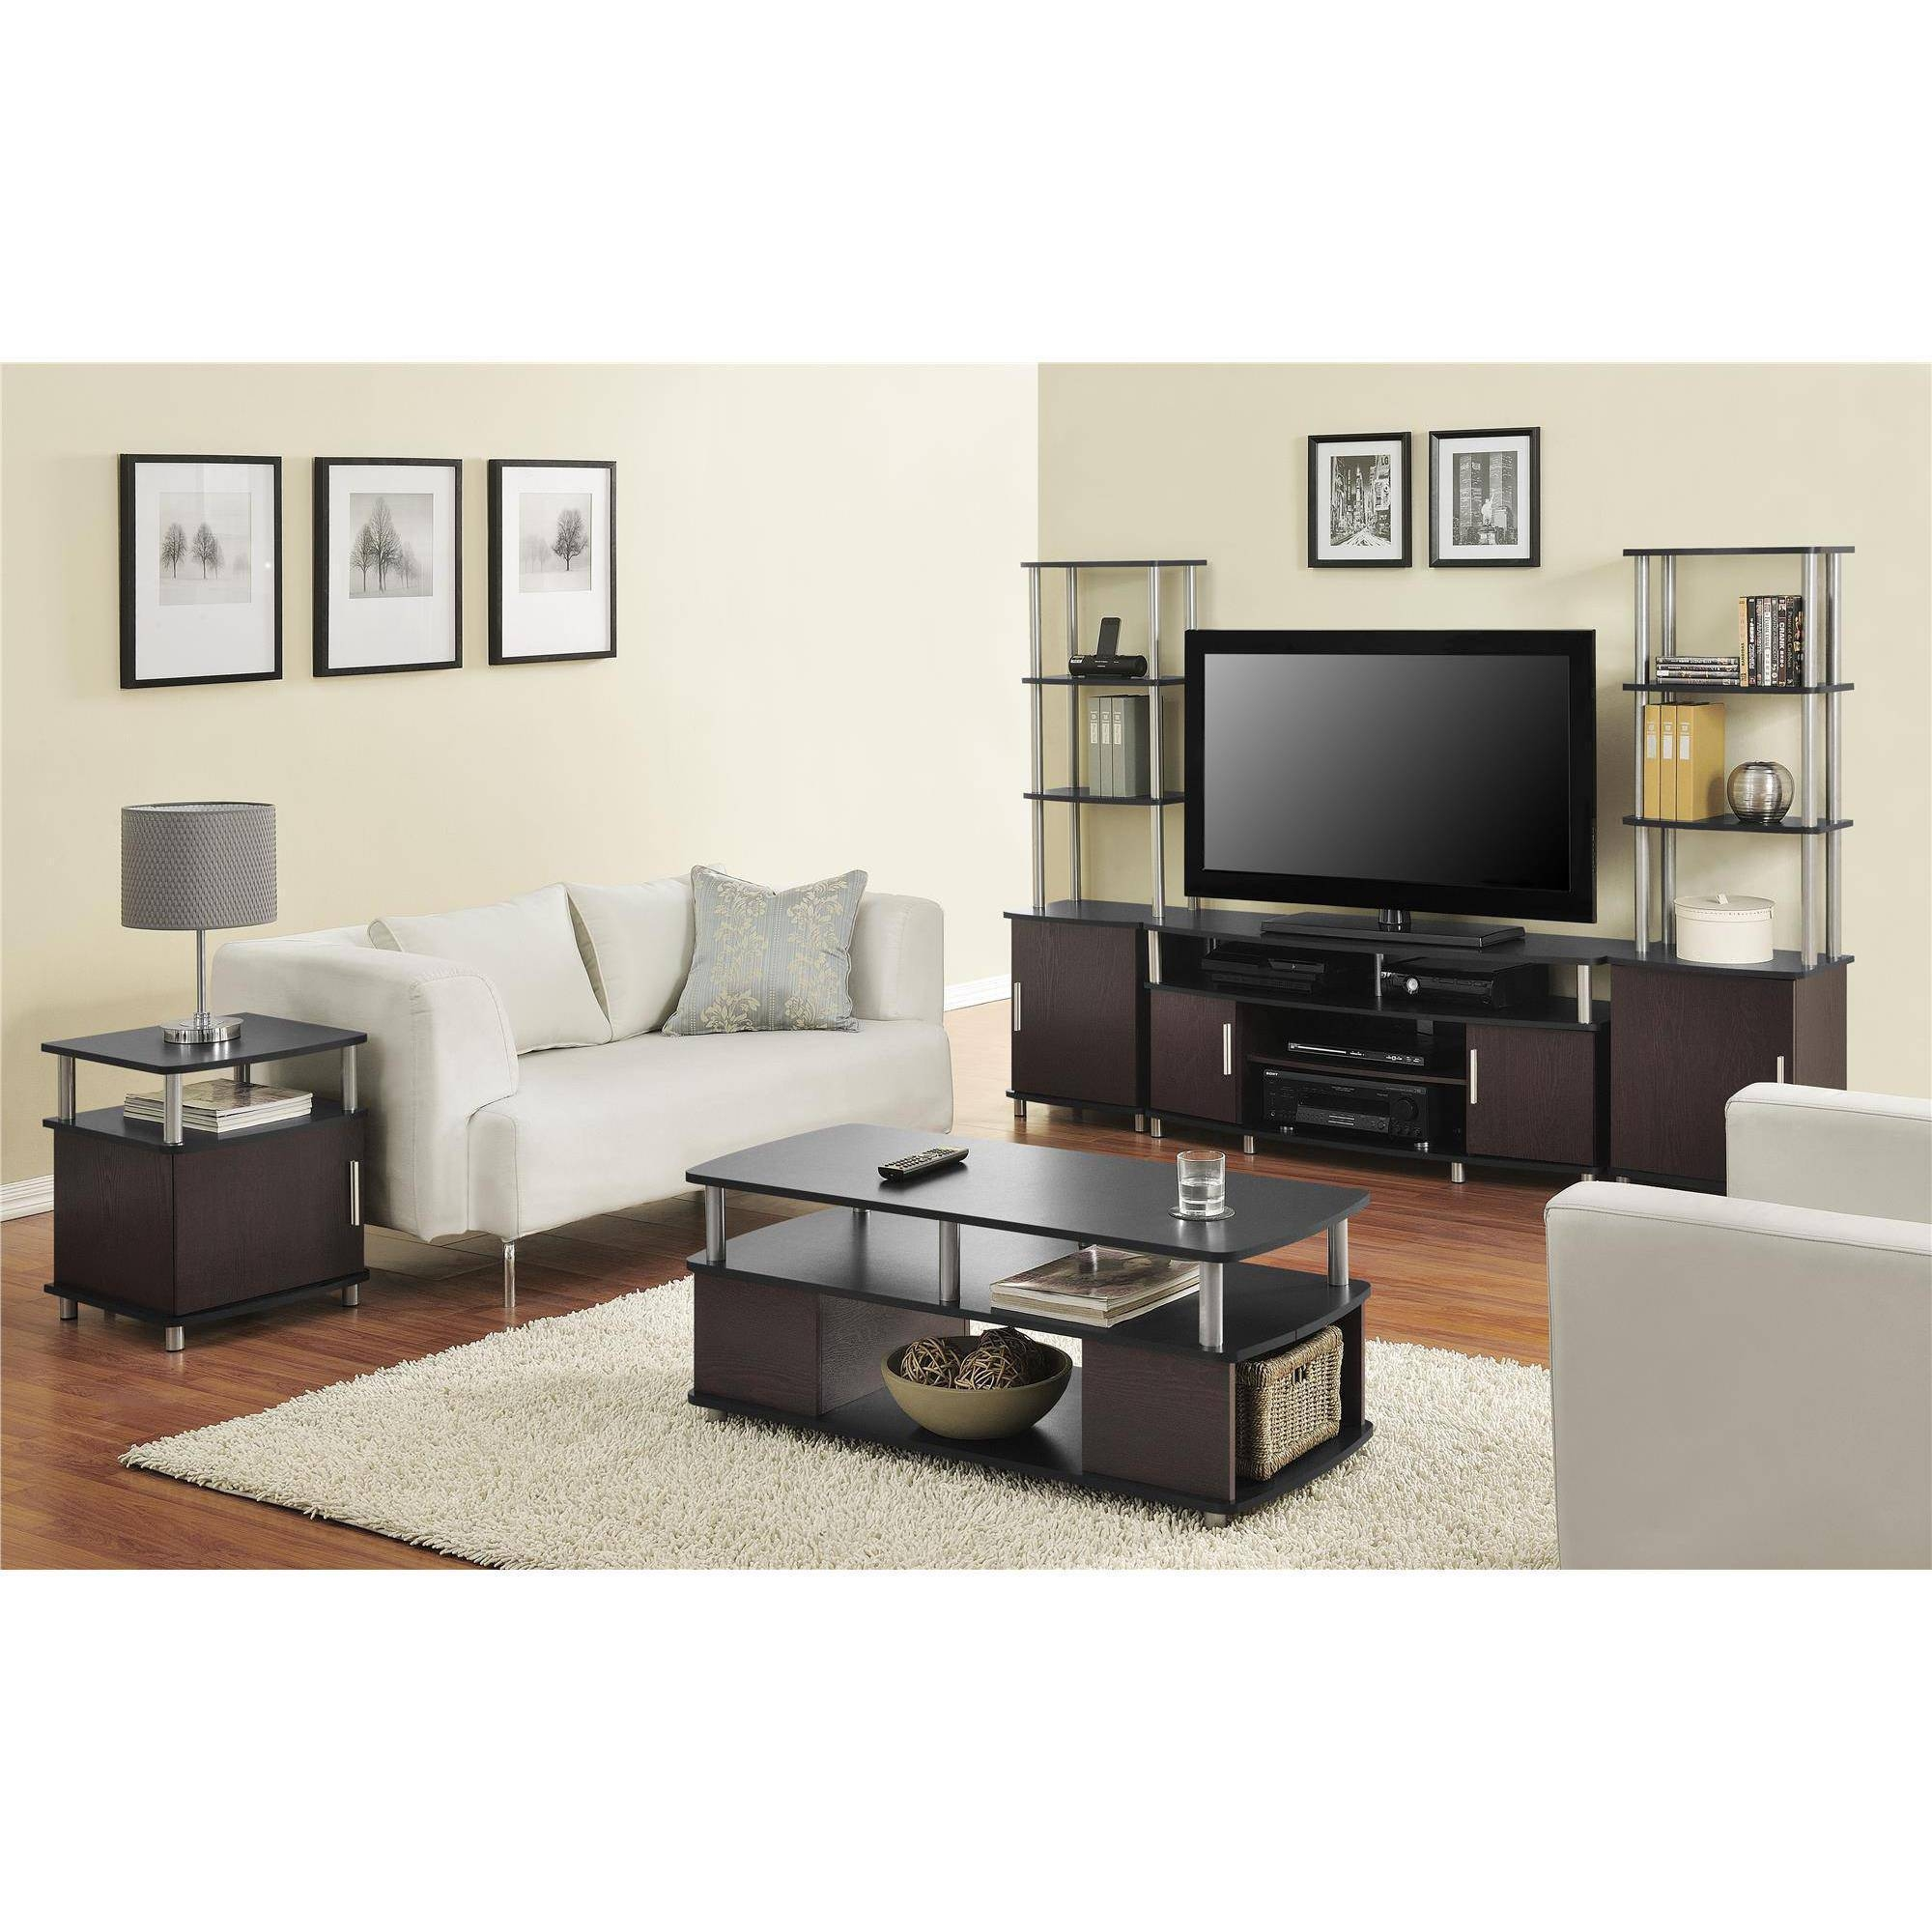 Tv Stand Coffee Table End Table Set | Coffee Tables Decoration pertaining to Coffee Tables And Tv Stands (Image 21 of 30)